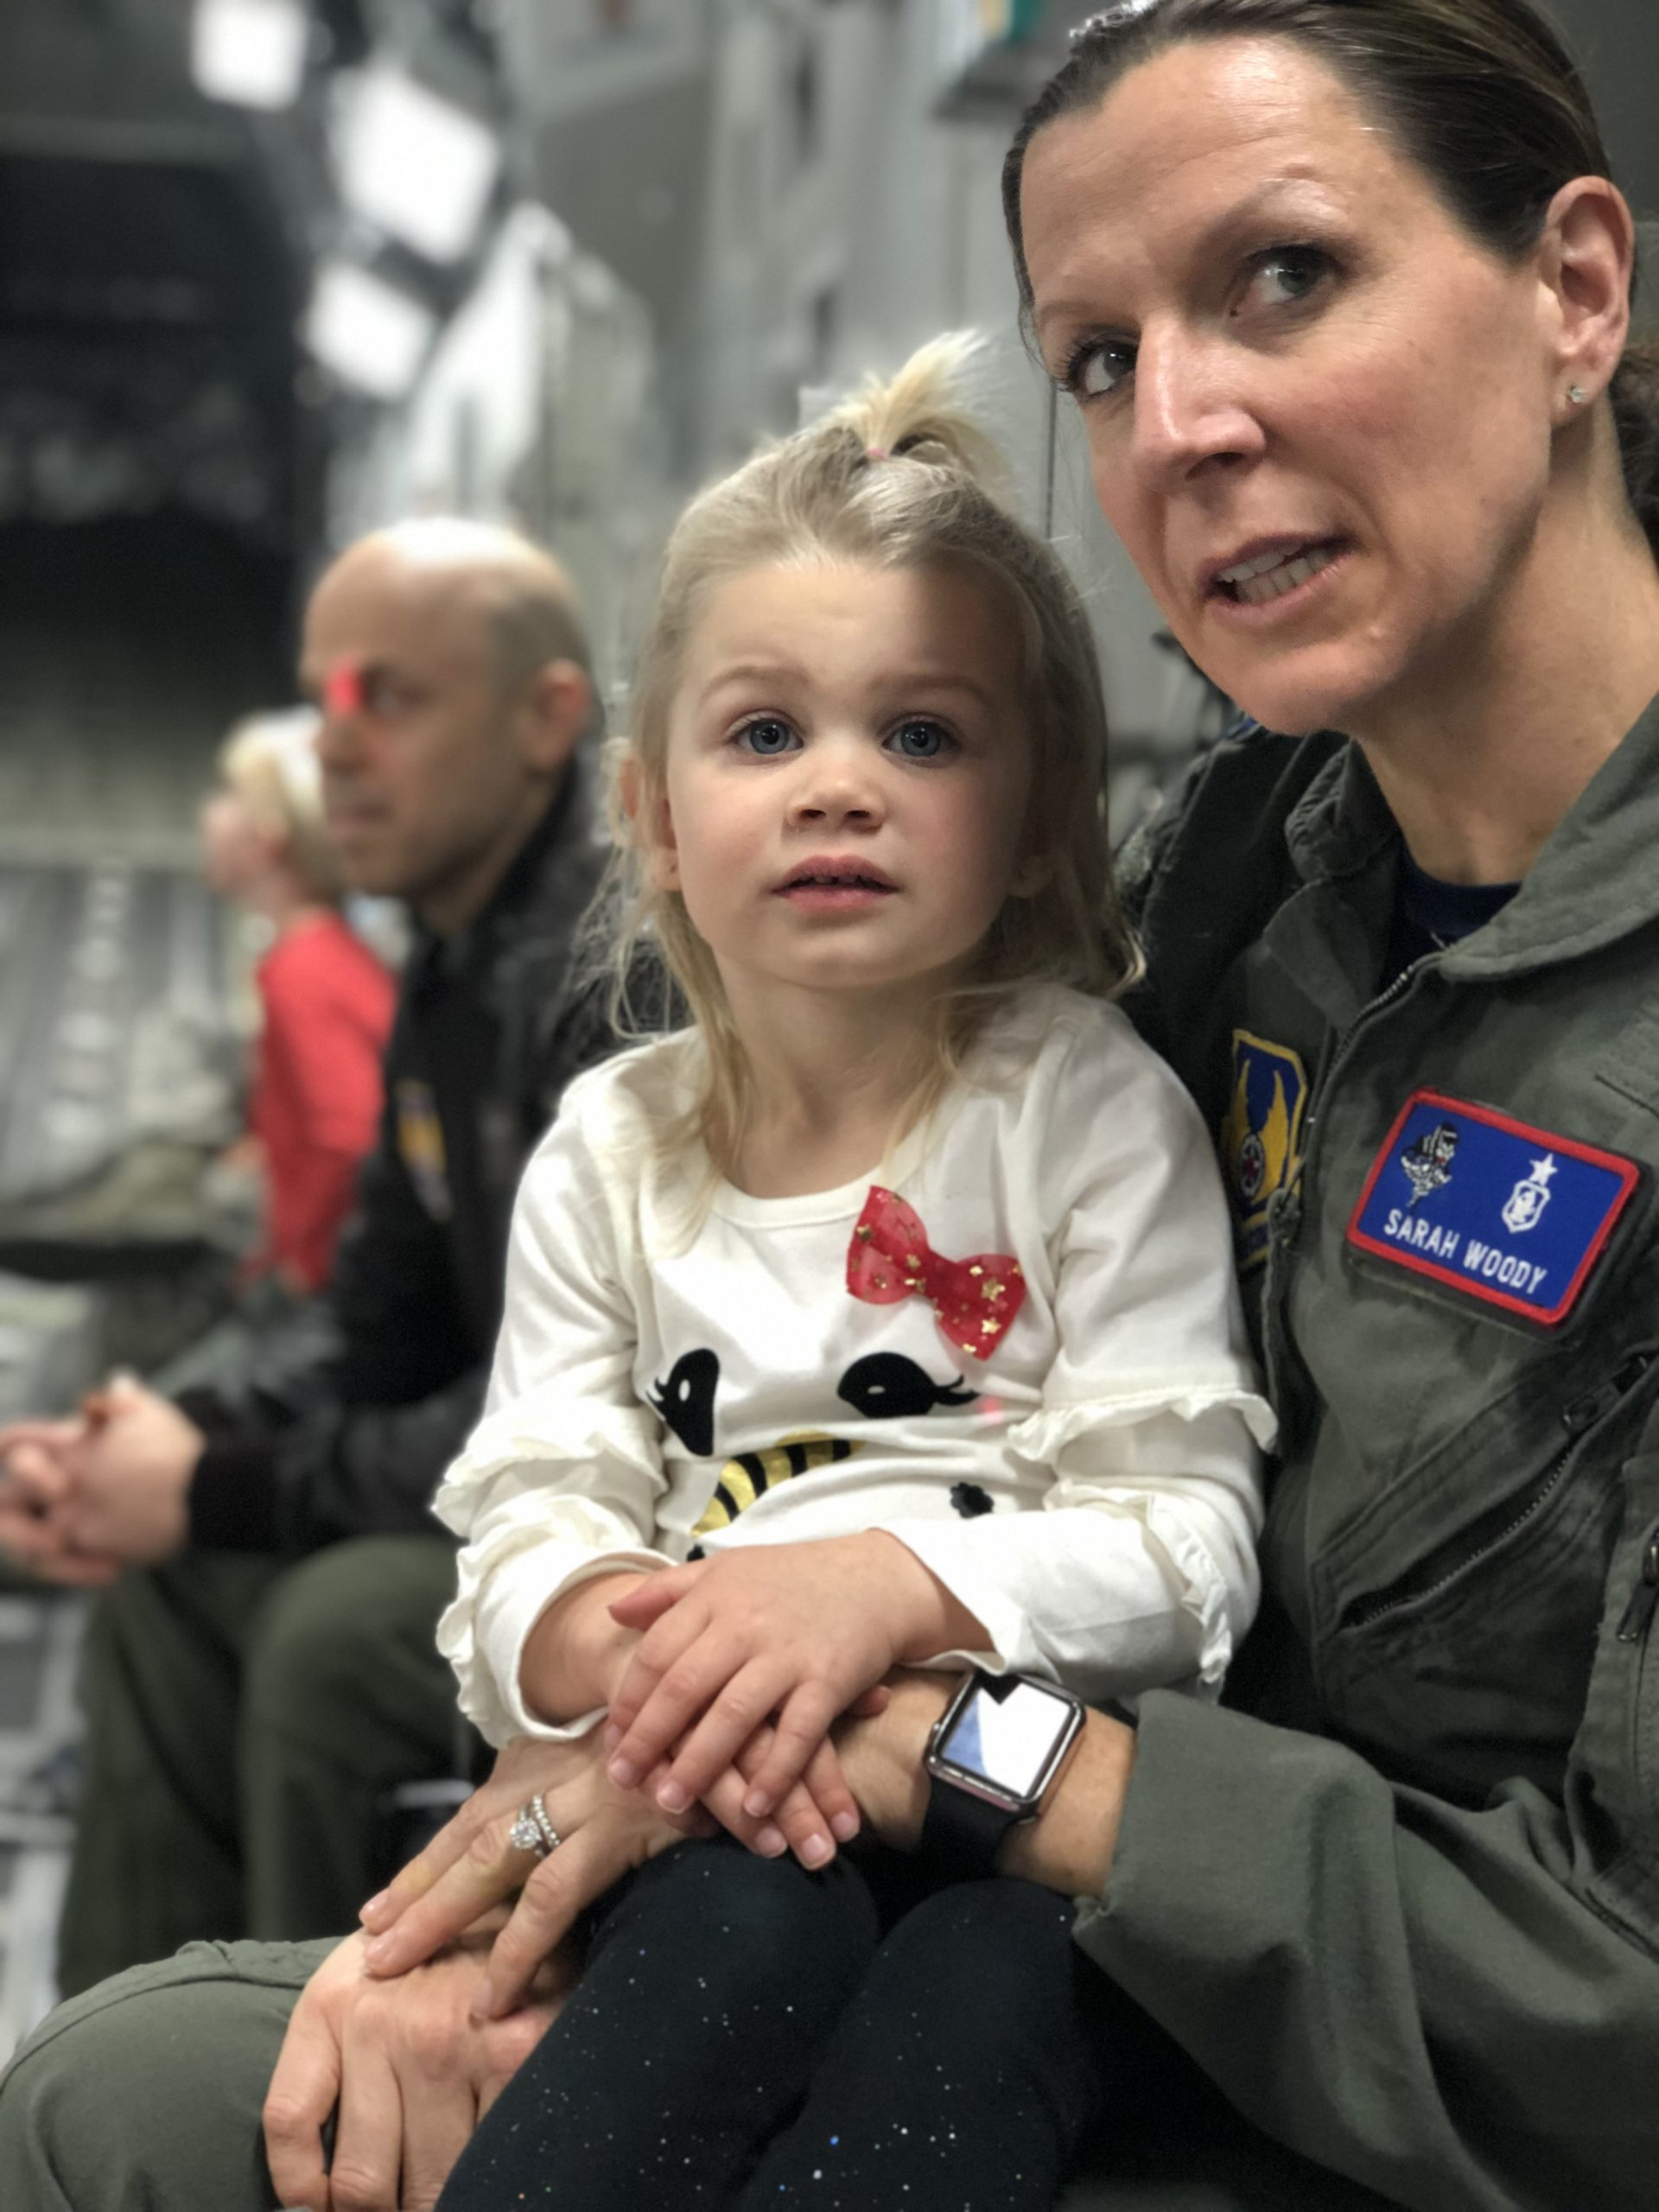 Sarah Woody in military uniform with a young child on her lap